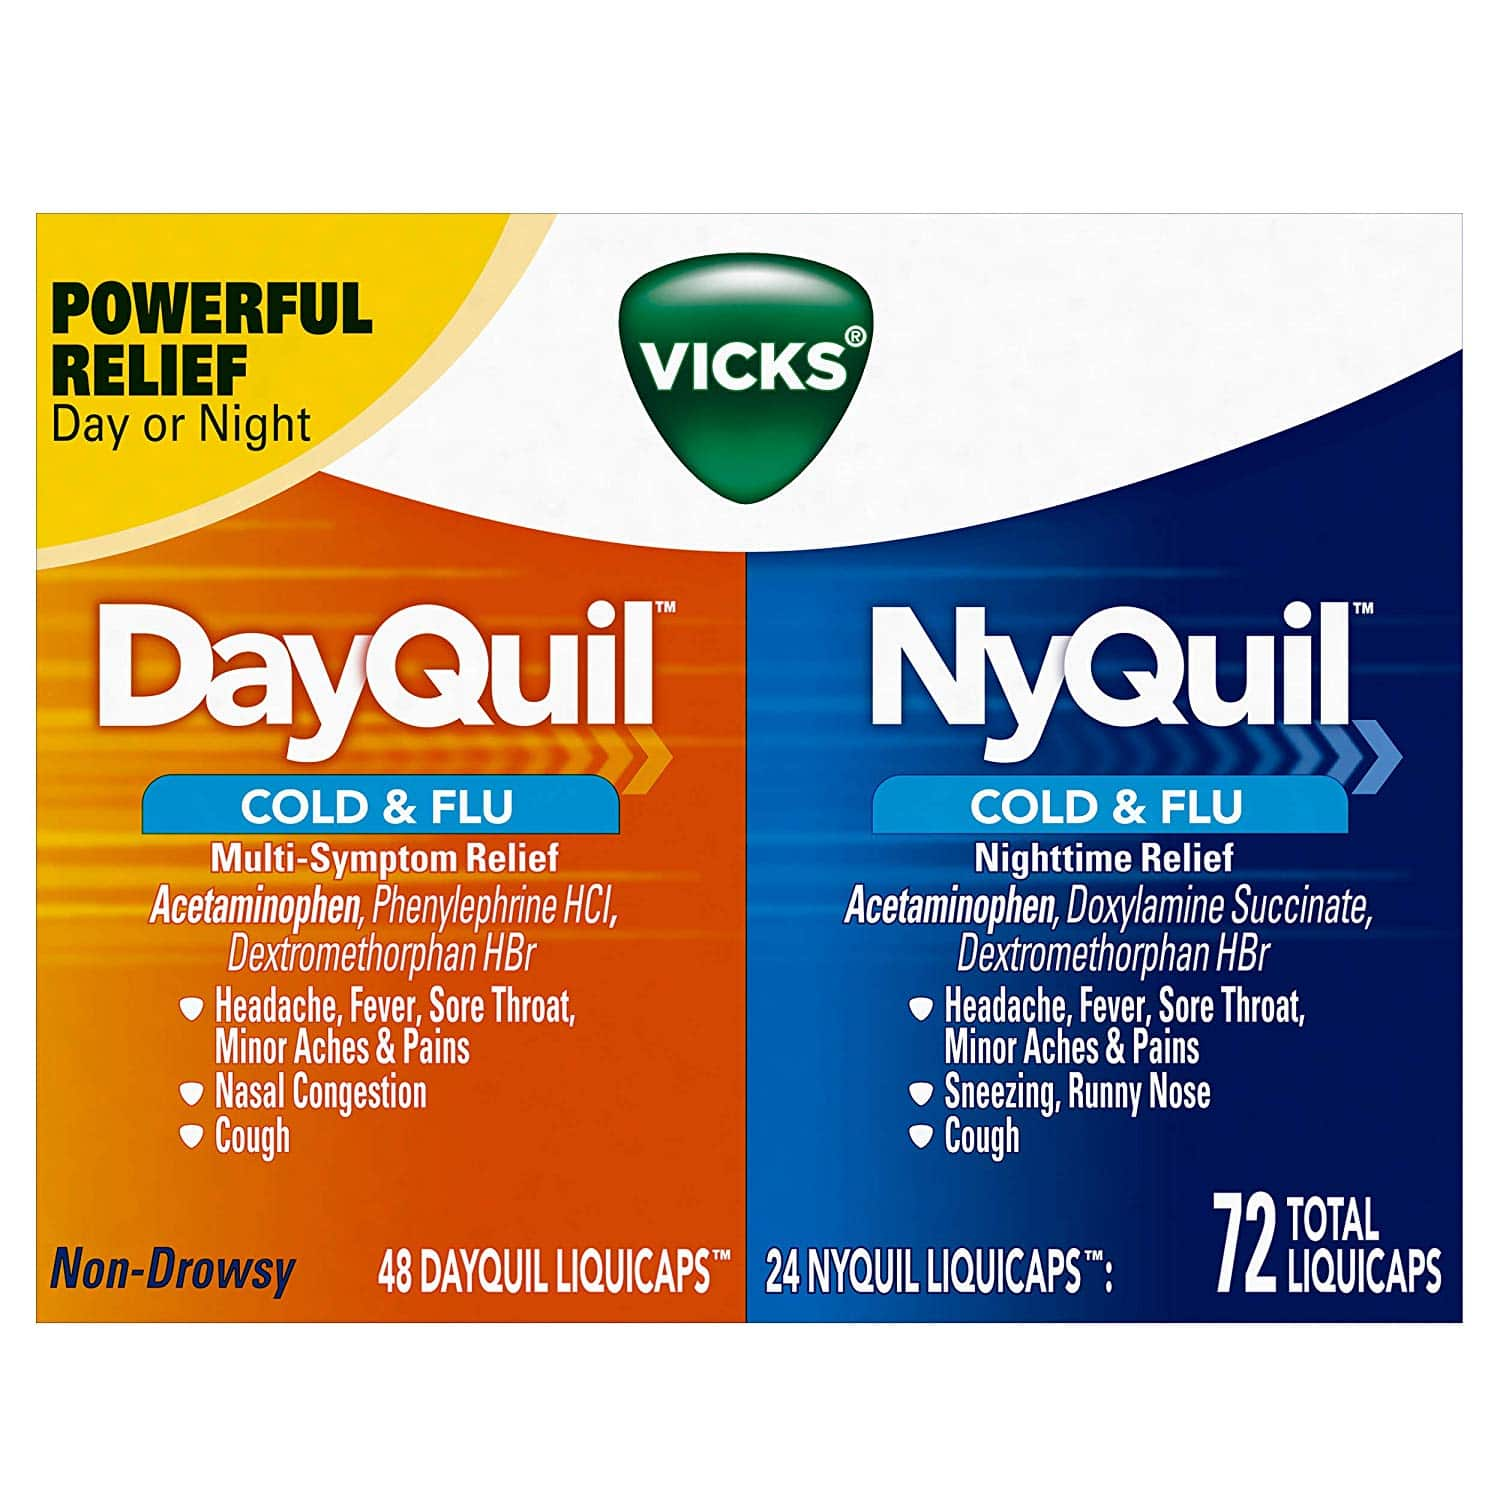 Vicks DayQuil & NyQuil Cough, Cold & Flu Relief Combo, 72 LiquiCaps (48 DayQuil, 24 NyQuil) - $18.85 free shipping with Prime